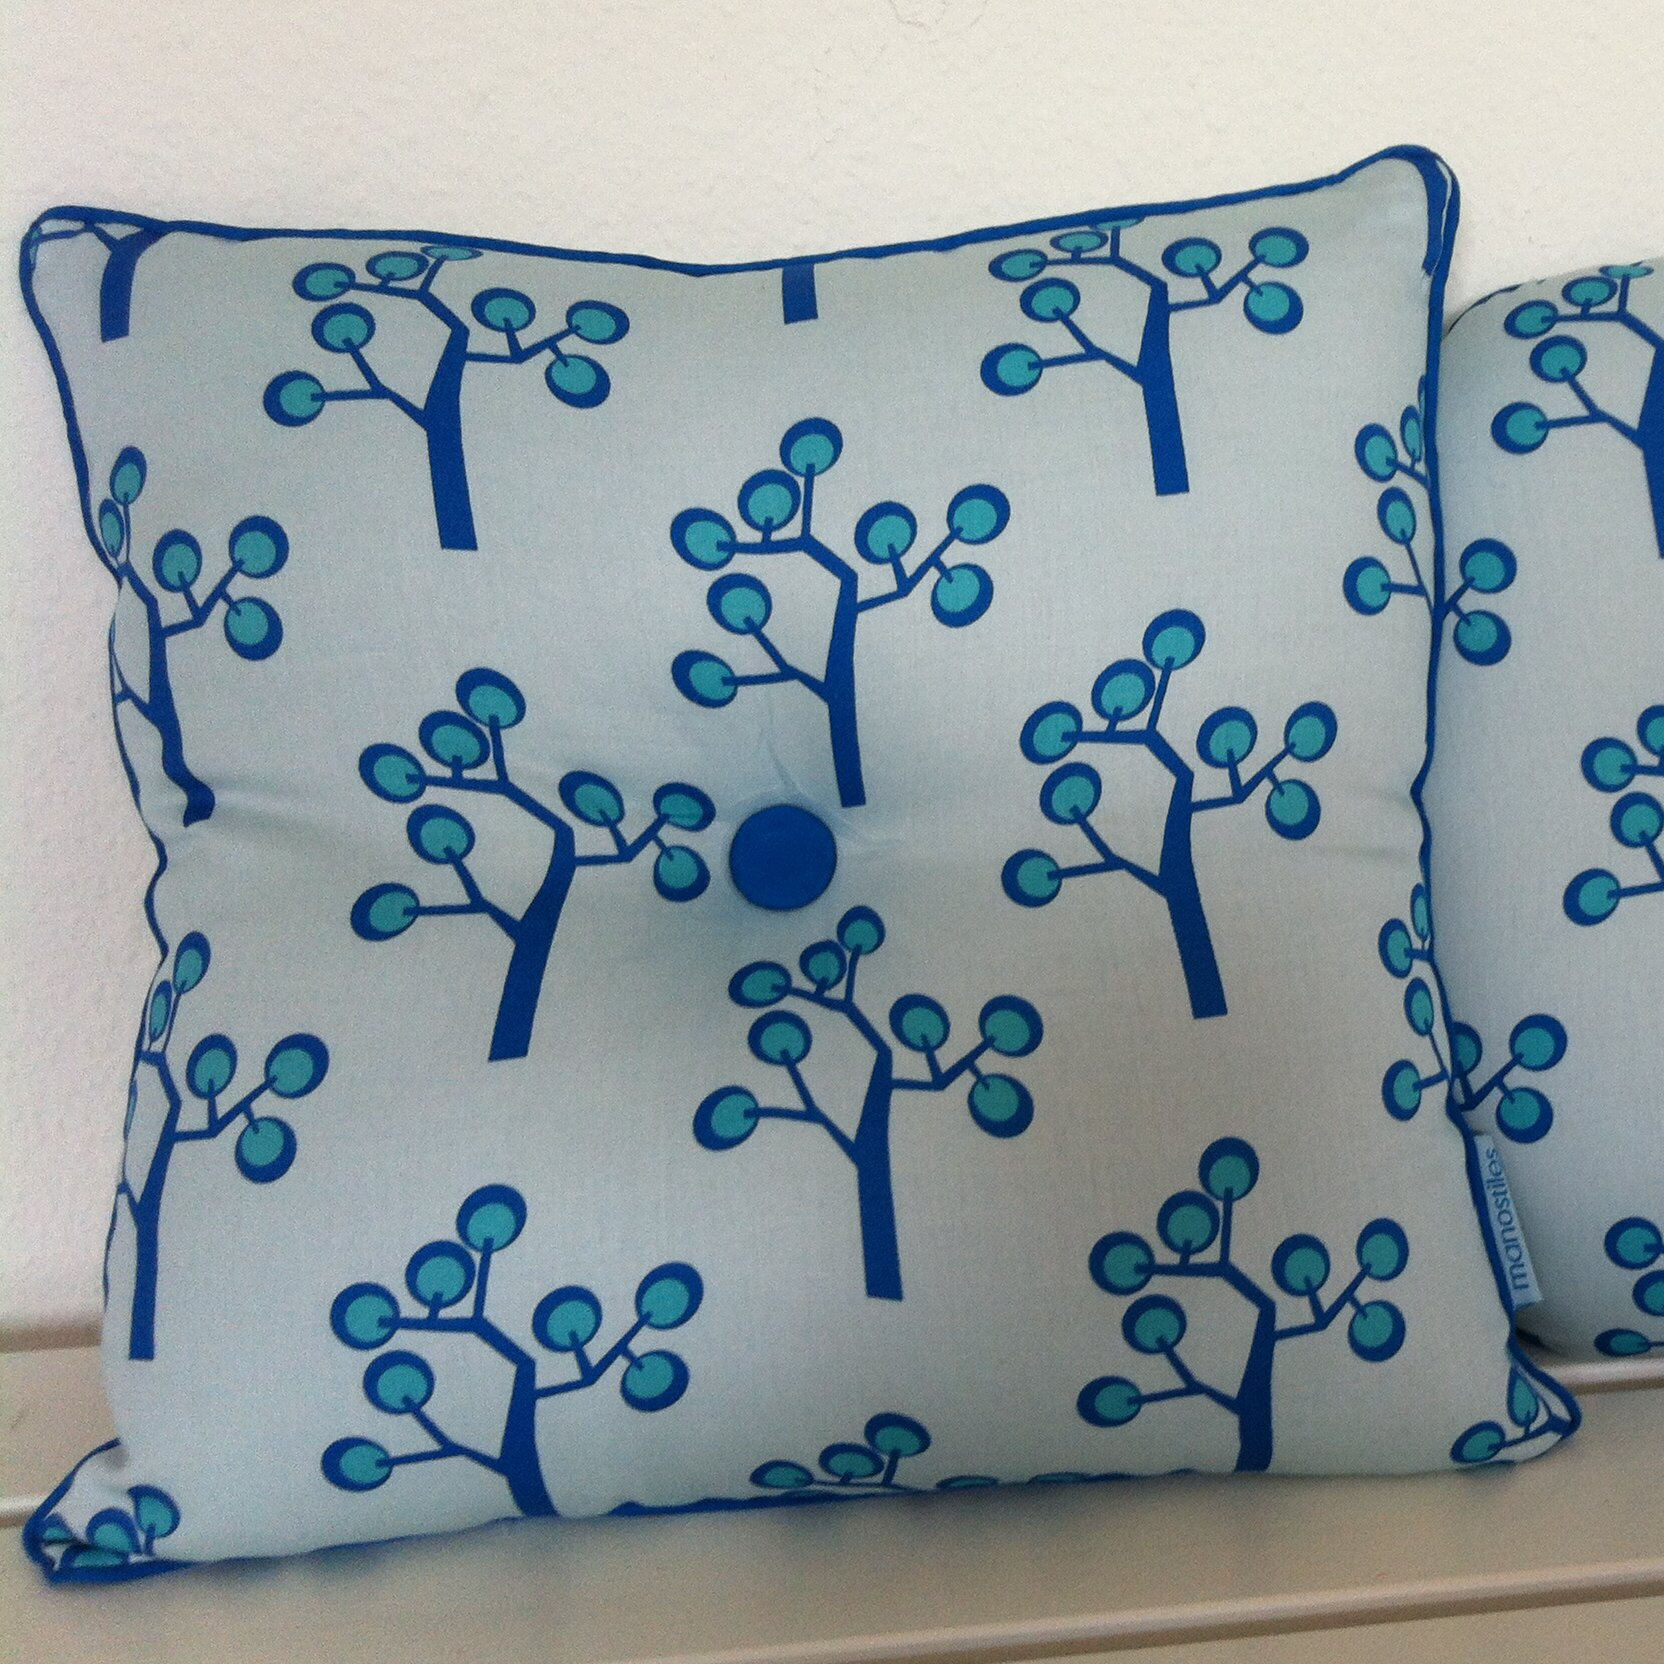 Scantrends Graphic Tree Kids Cotton Throw Pillow Wayfair